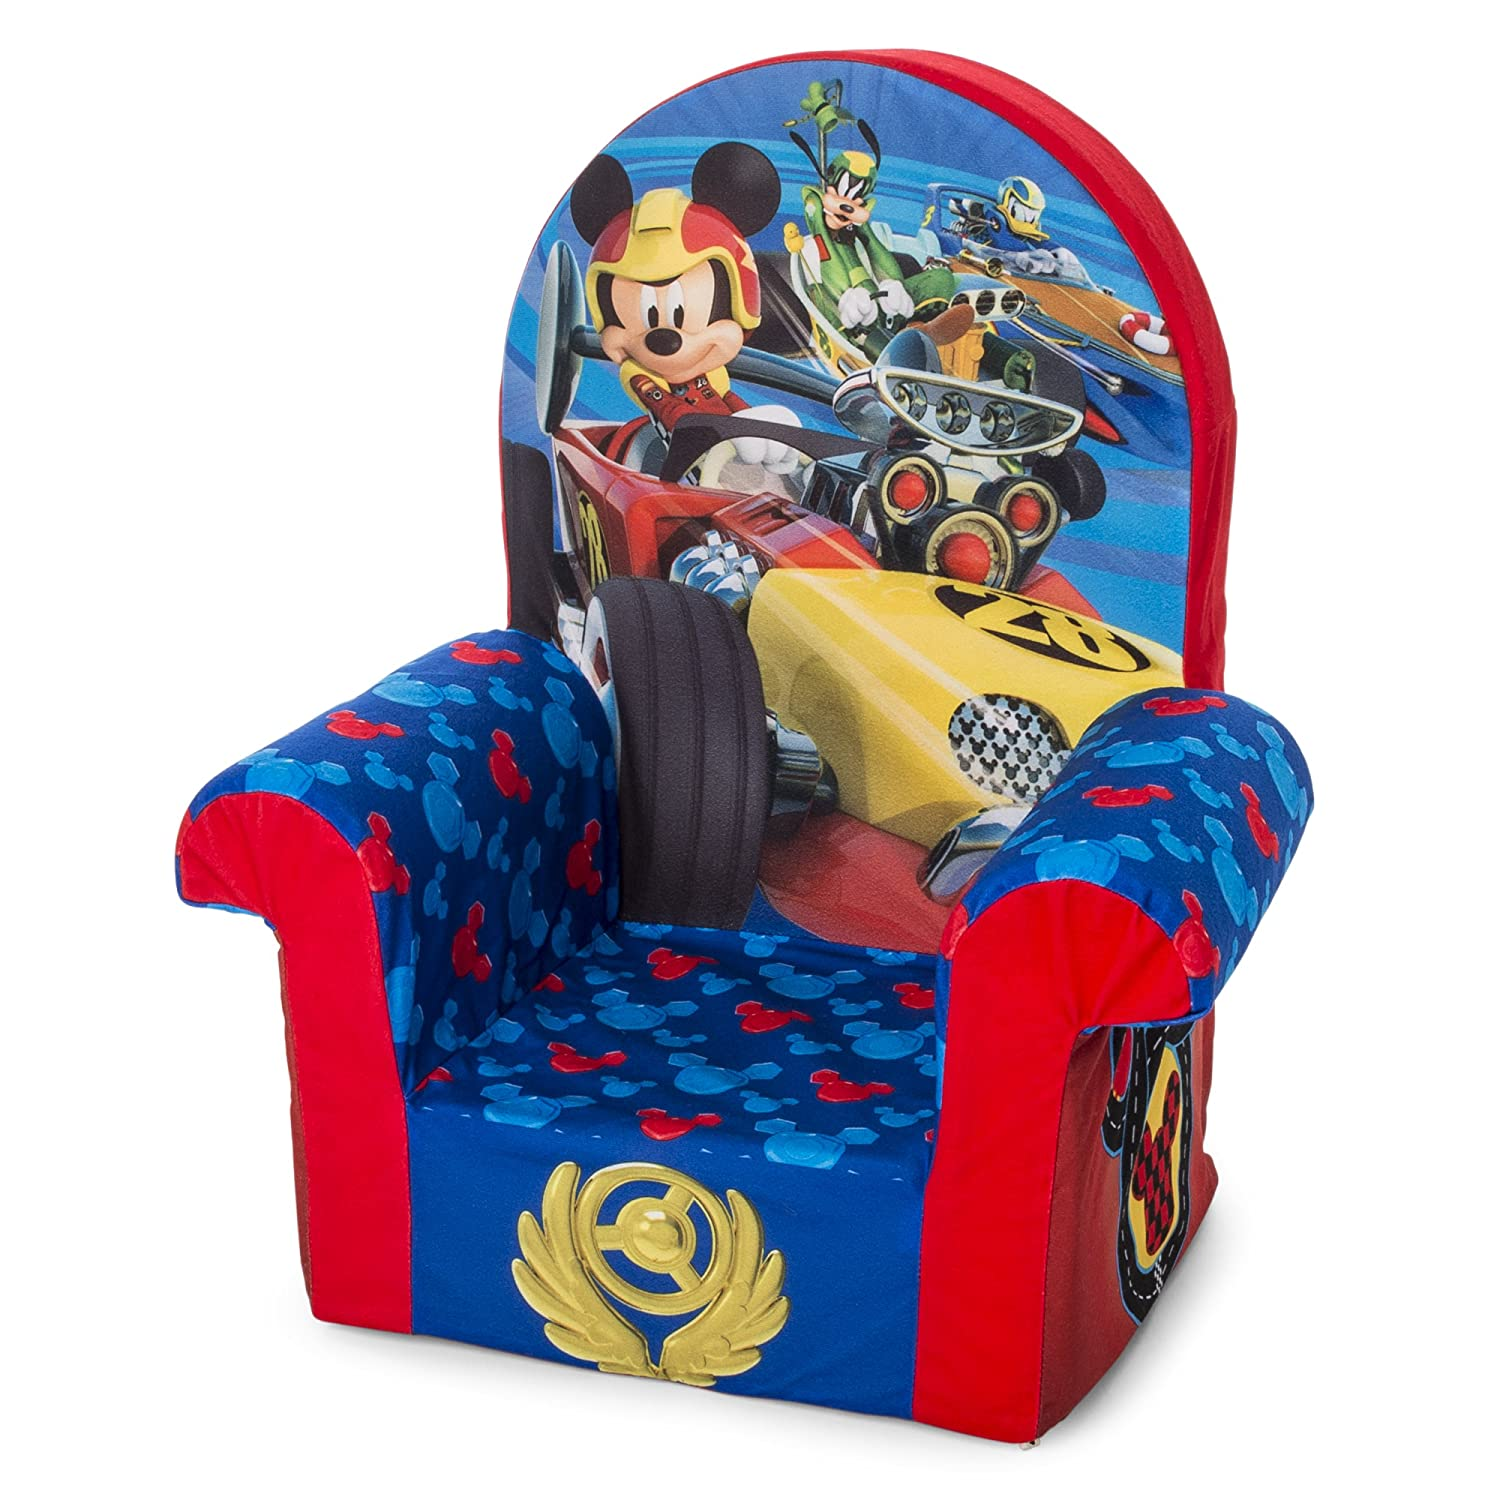 Enjoyable Marshmallow Furniture Childrens Foam High Back Chair Disney Mickey Mouse Roadsters High Back Chair Pabps2019 Chair Design Images Pabps2019Com